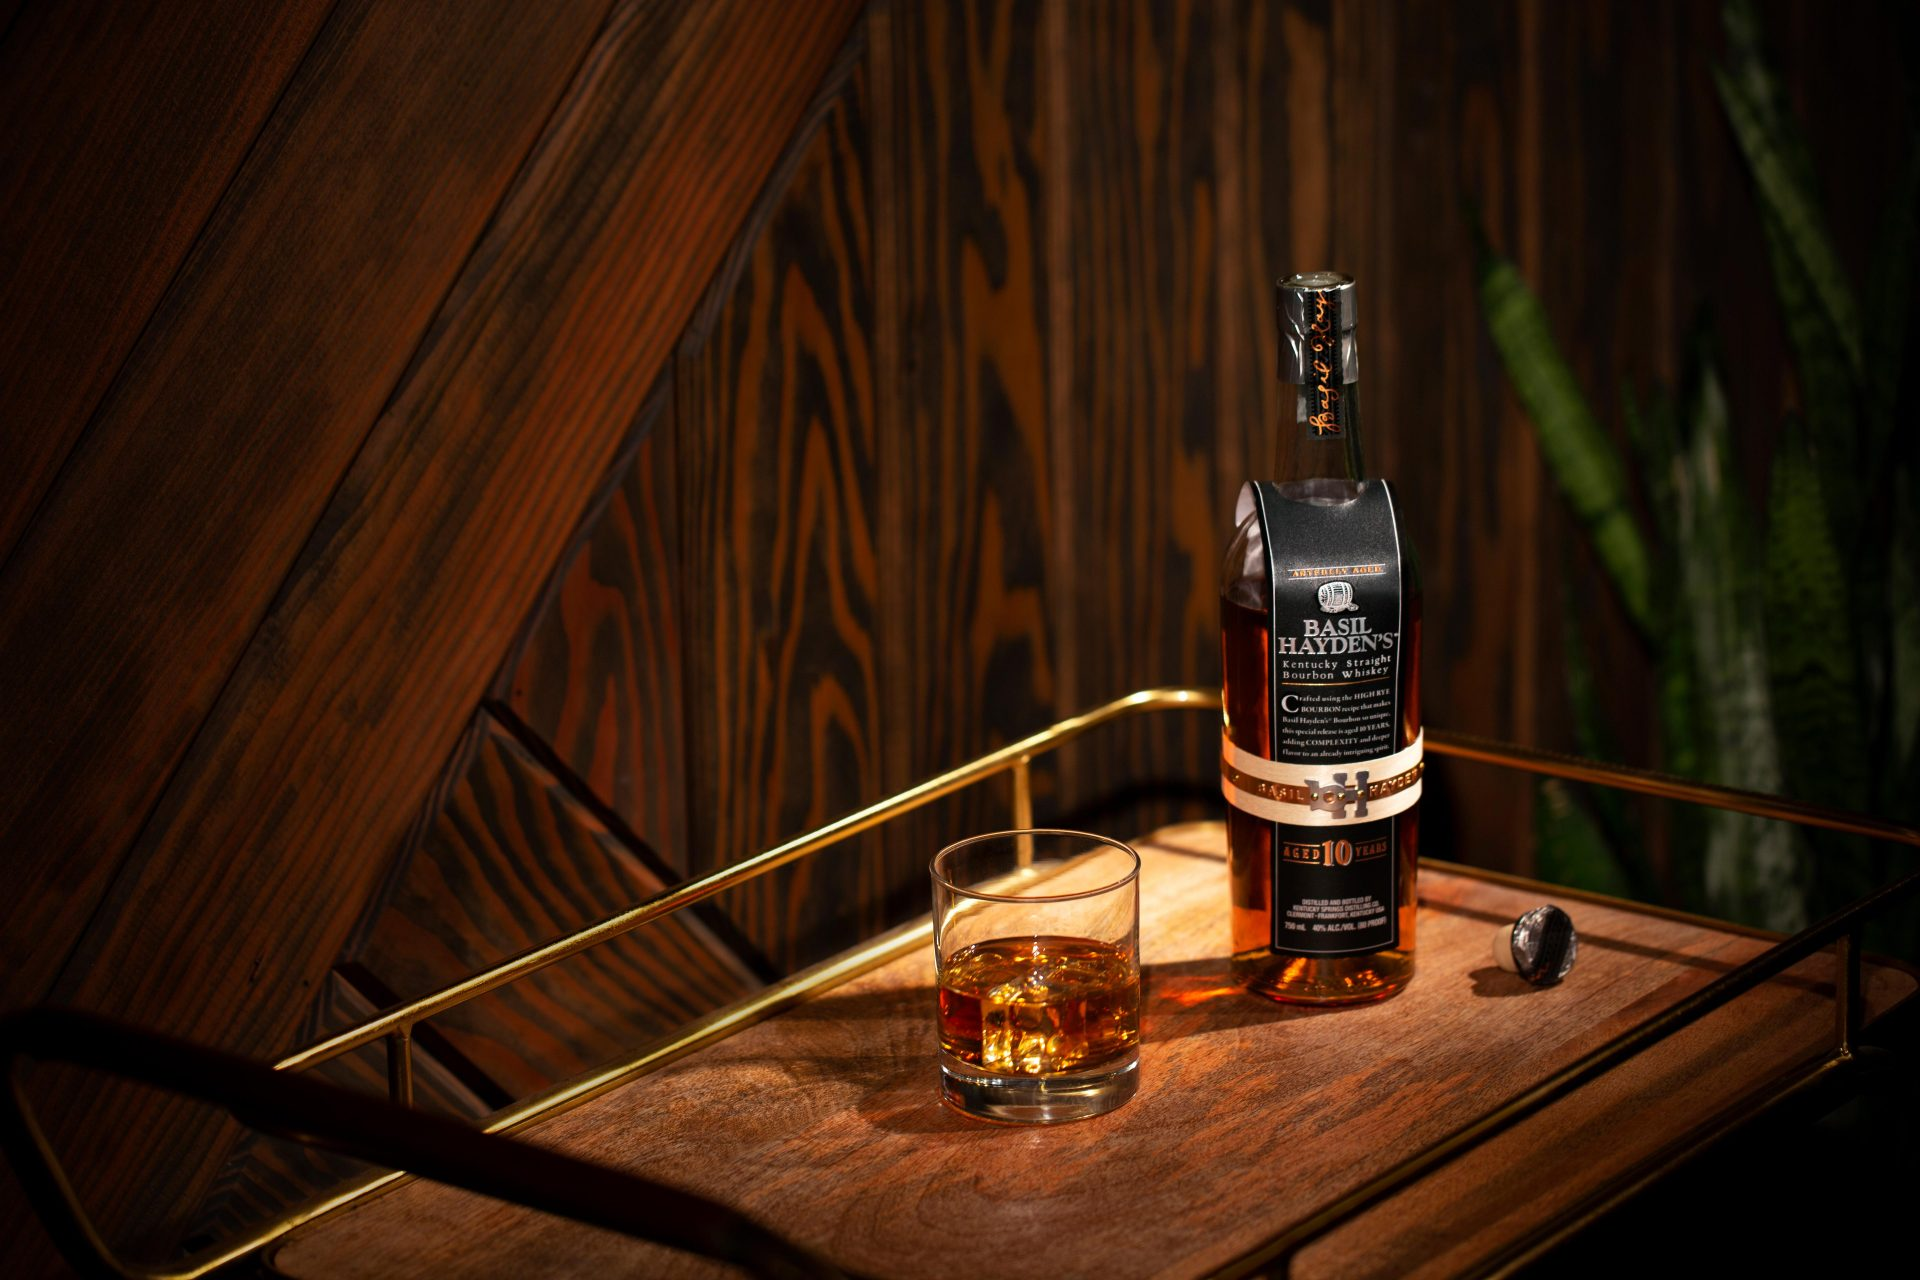 Basil Hayden's 10-Year-Old Bourbon Drops in Time for Christmas 15